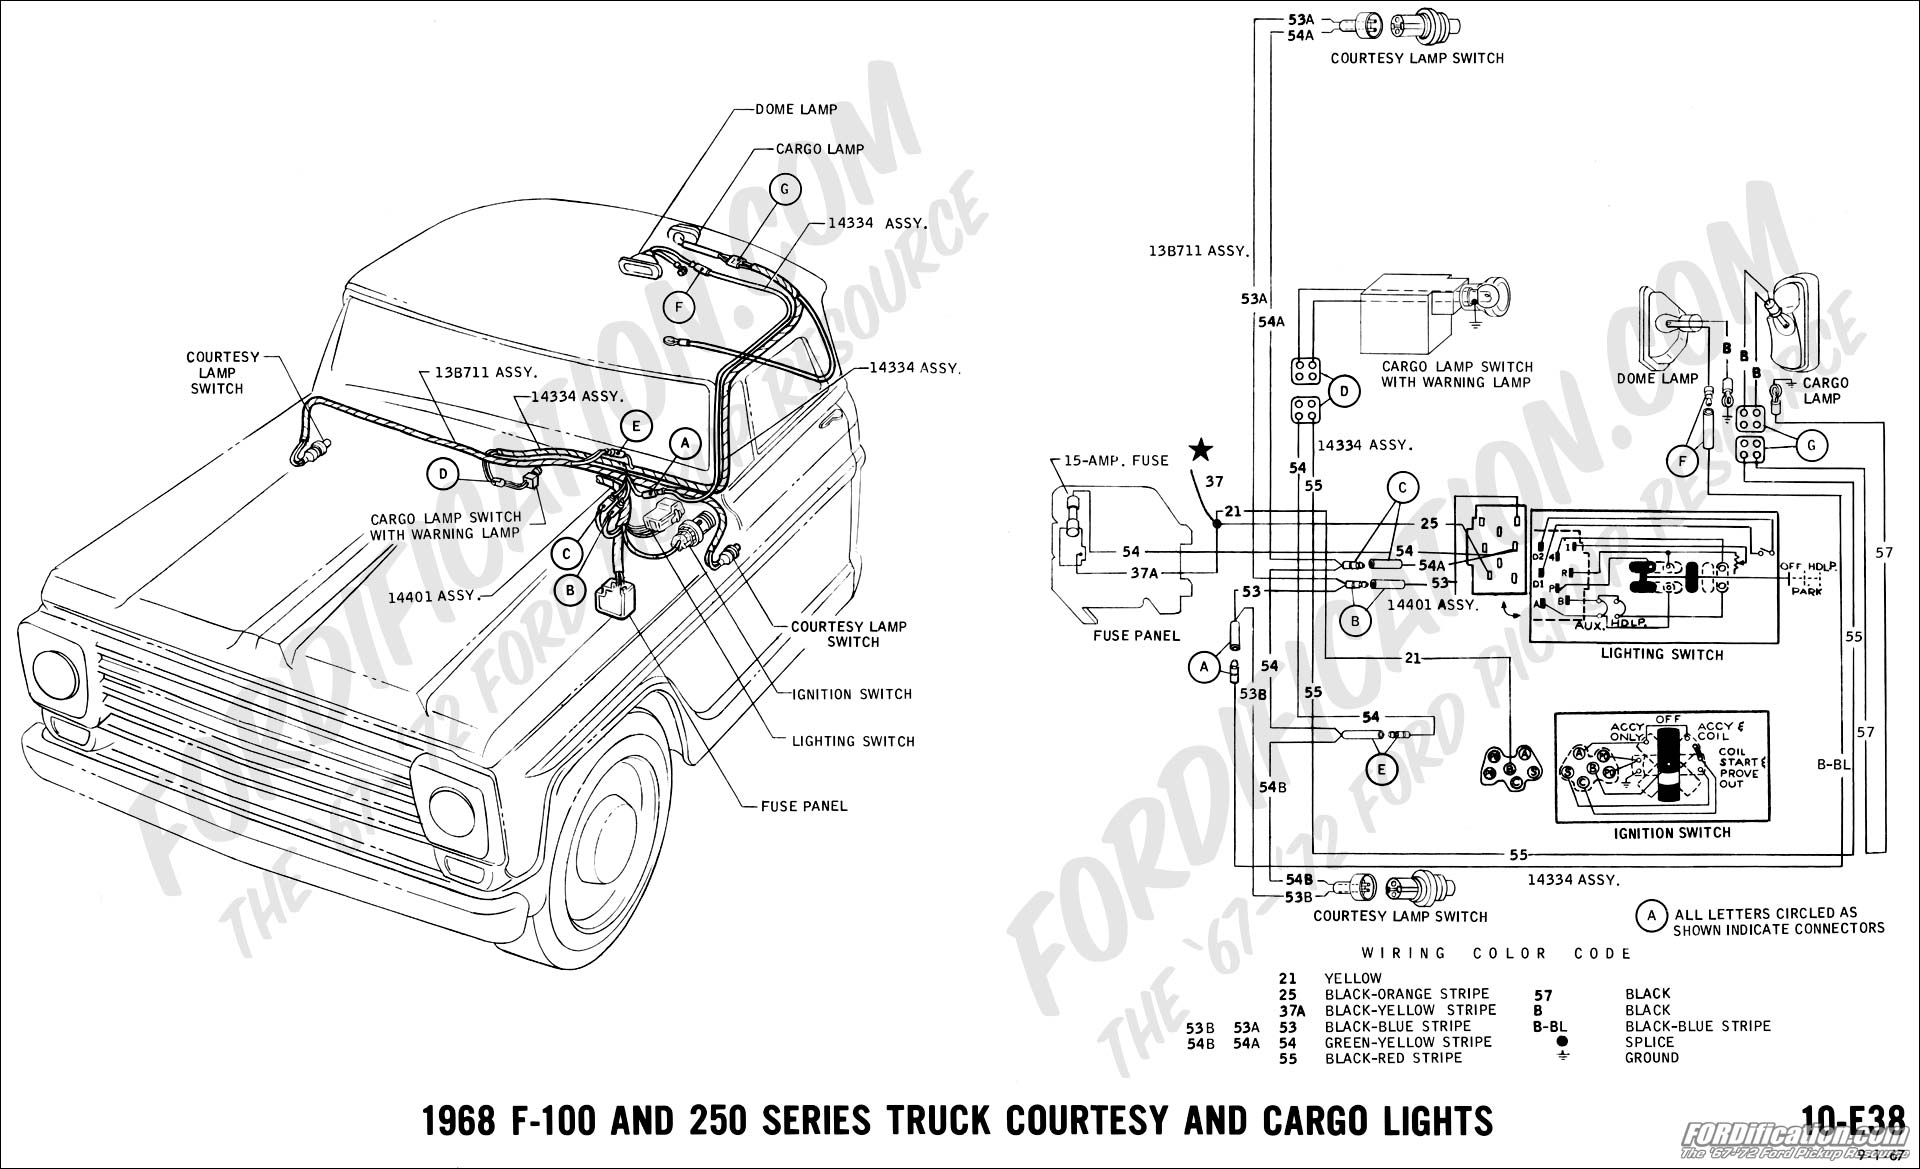 1984 Ford Car Wiring Schematics Library Diagram 250 Motor Switch U2022 Rh 140 82 24 126 F